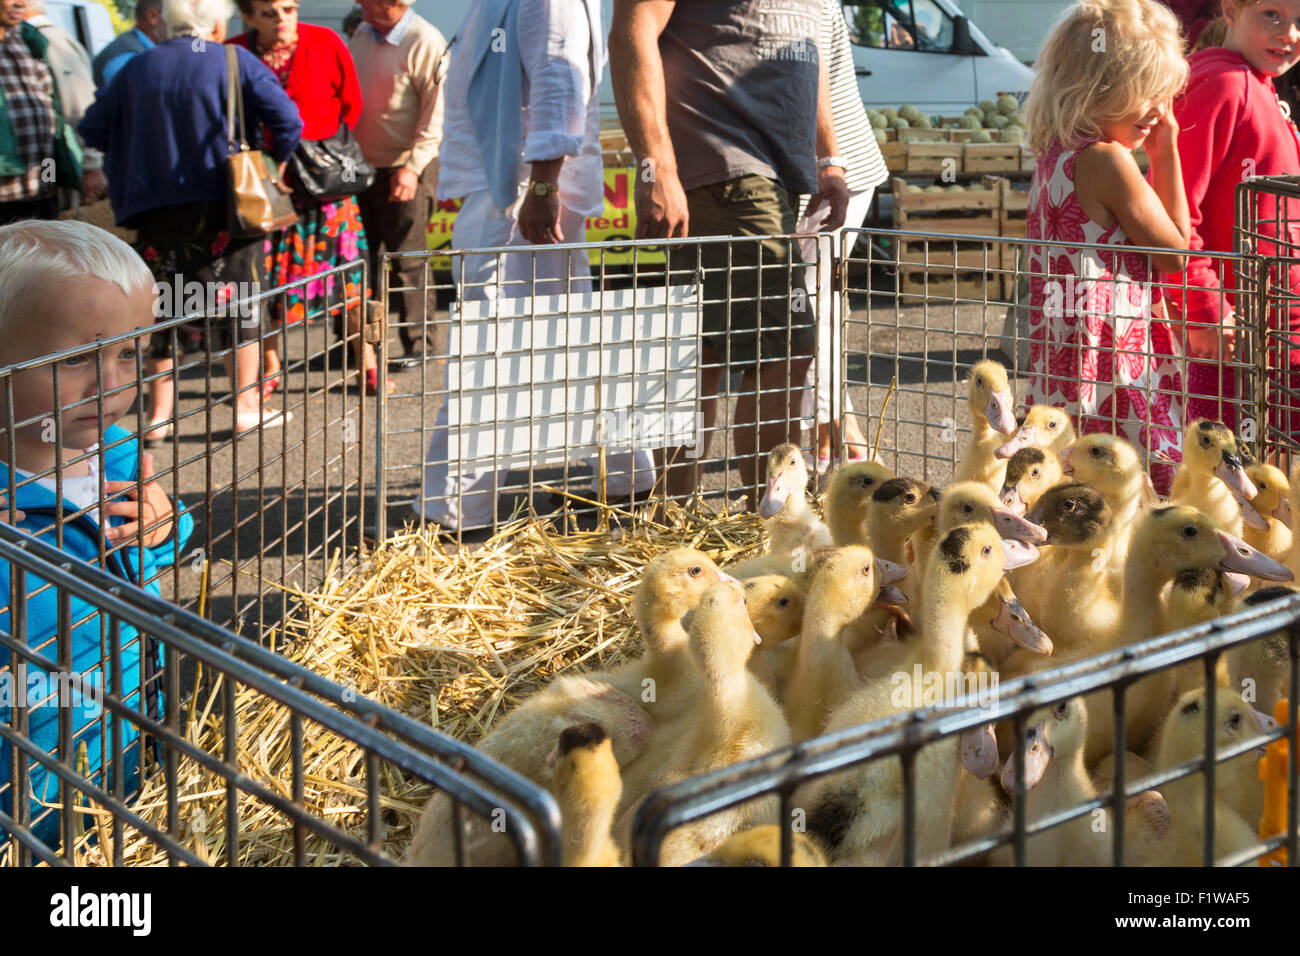 Poultry at Rouillac, Charente Maritime, south west France - Stock Image